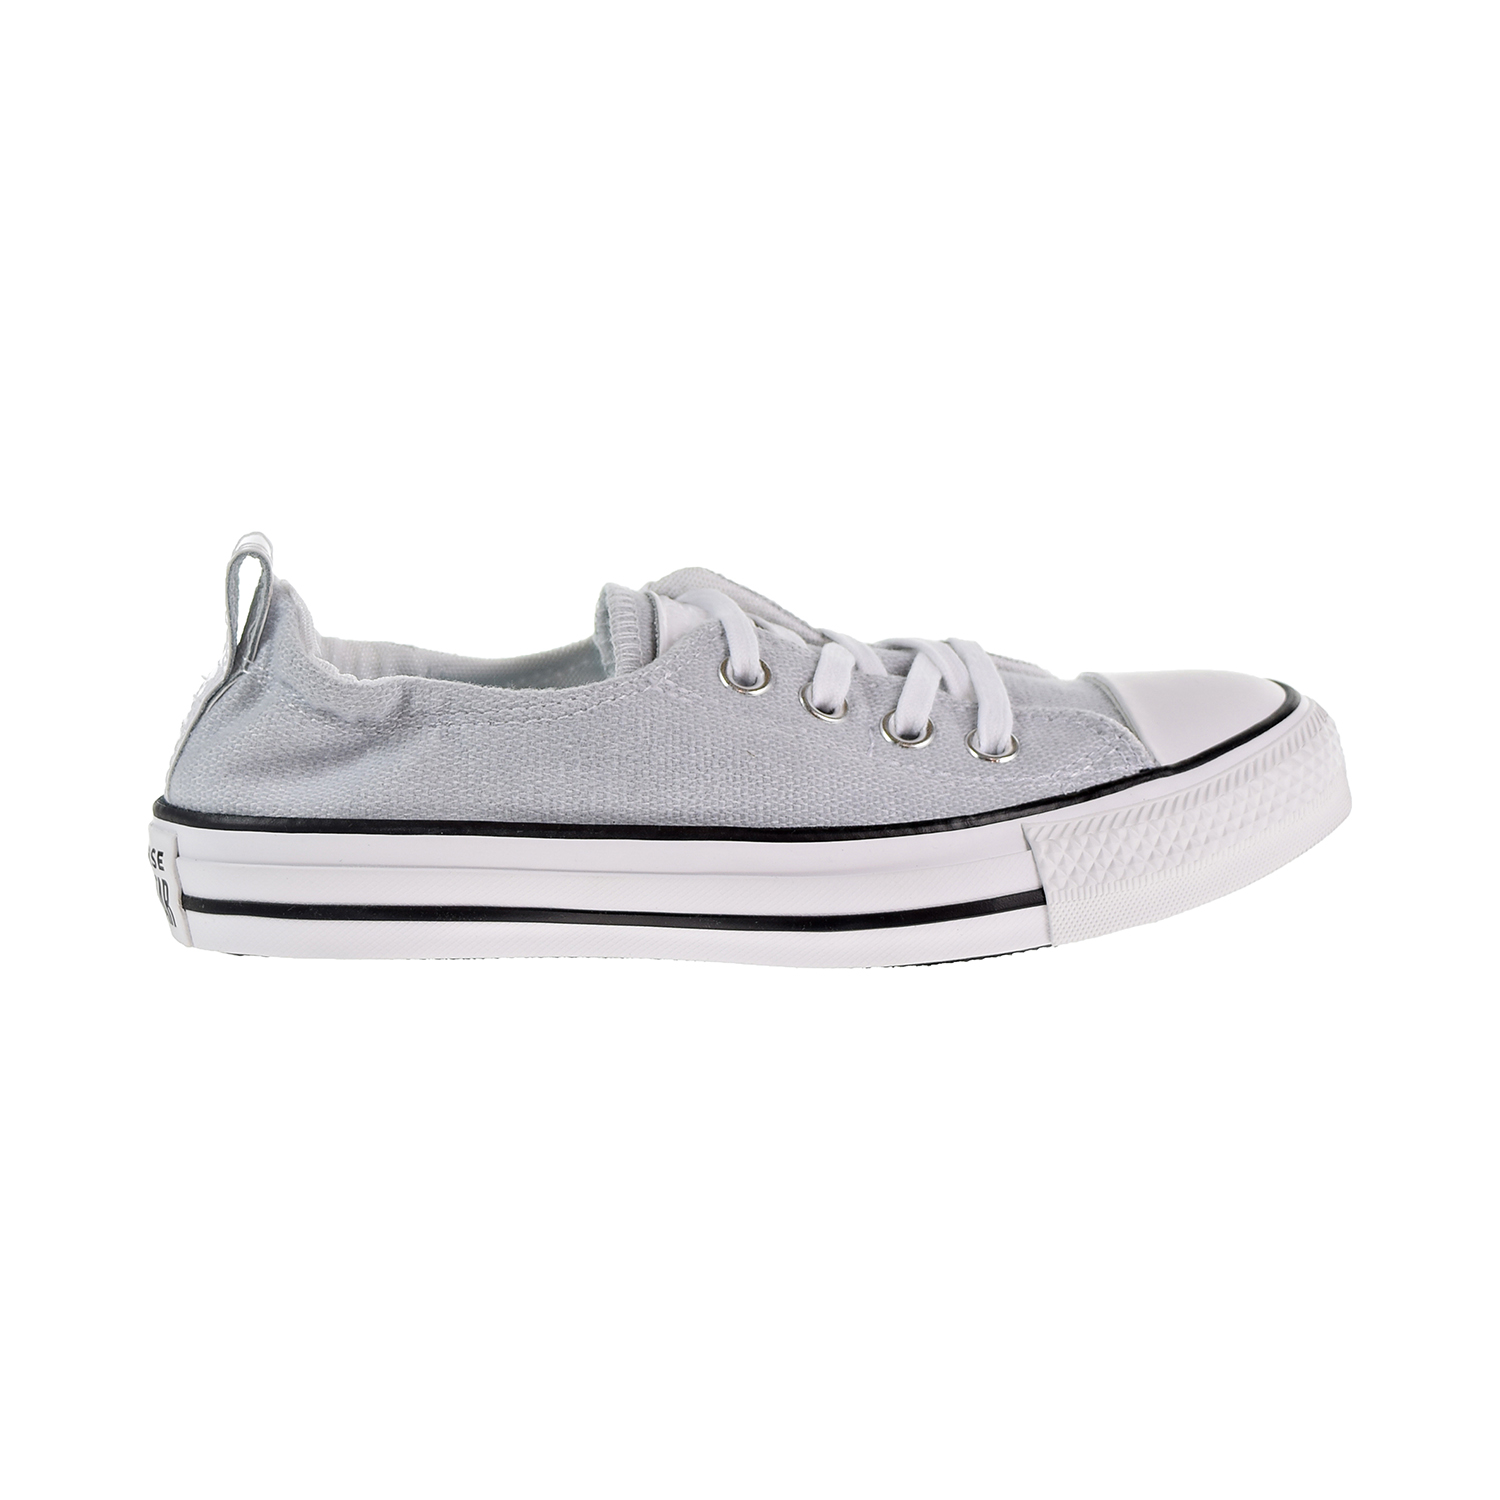 7f70334966e4a6 Details about Converse Chuck Taylor All Star Shoreline Slip Women s Shoes  White Black 562458f